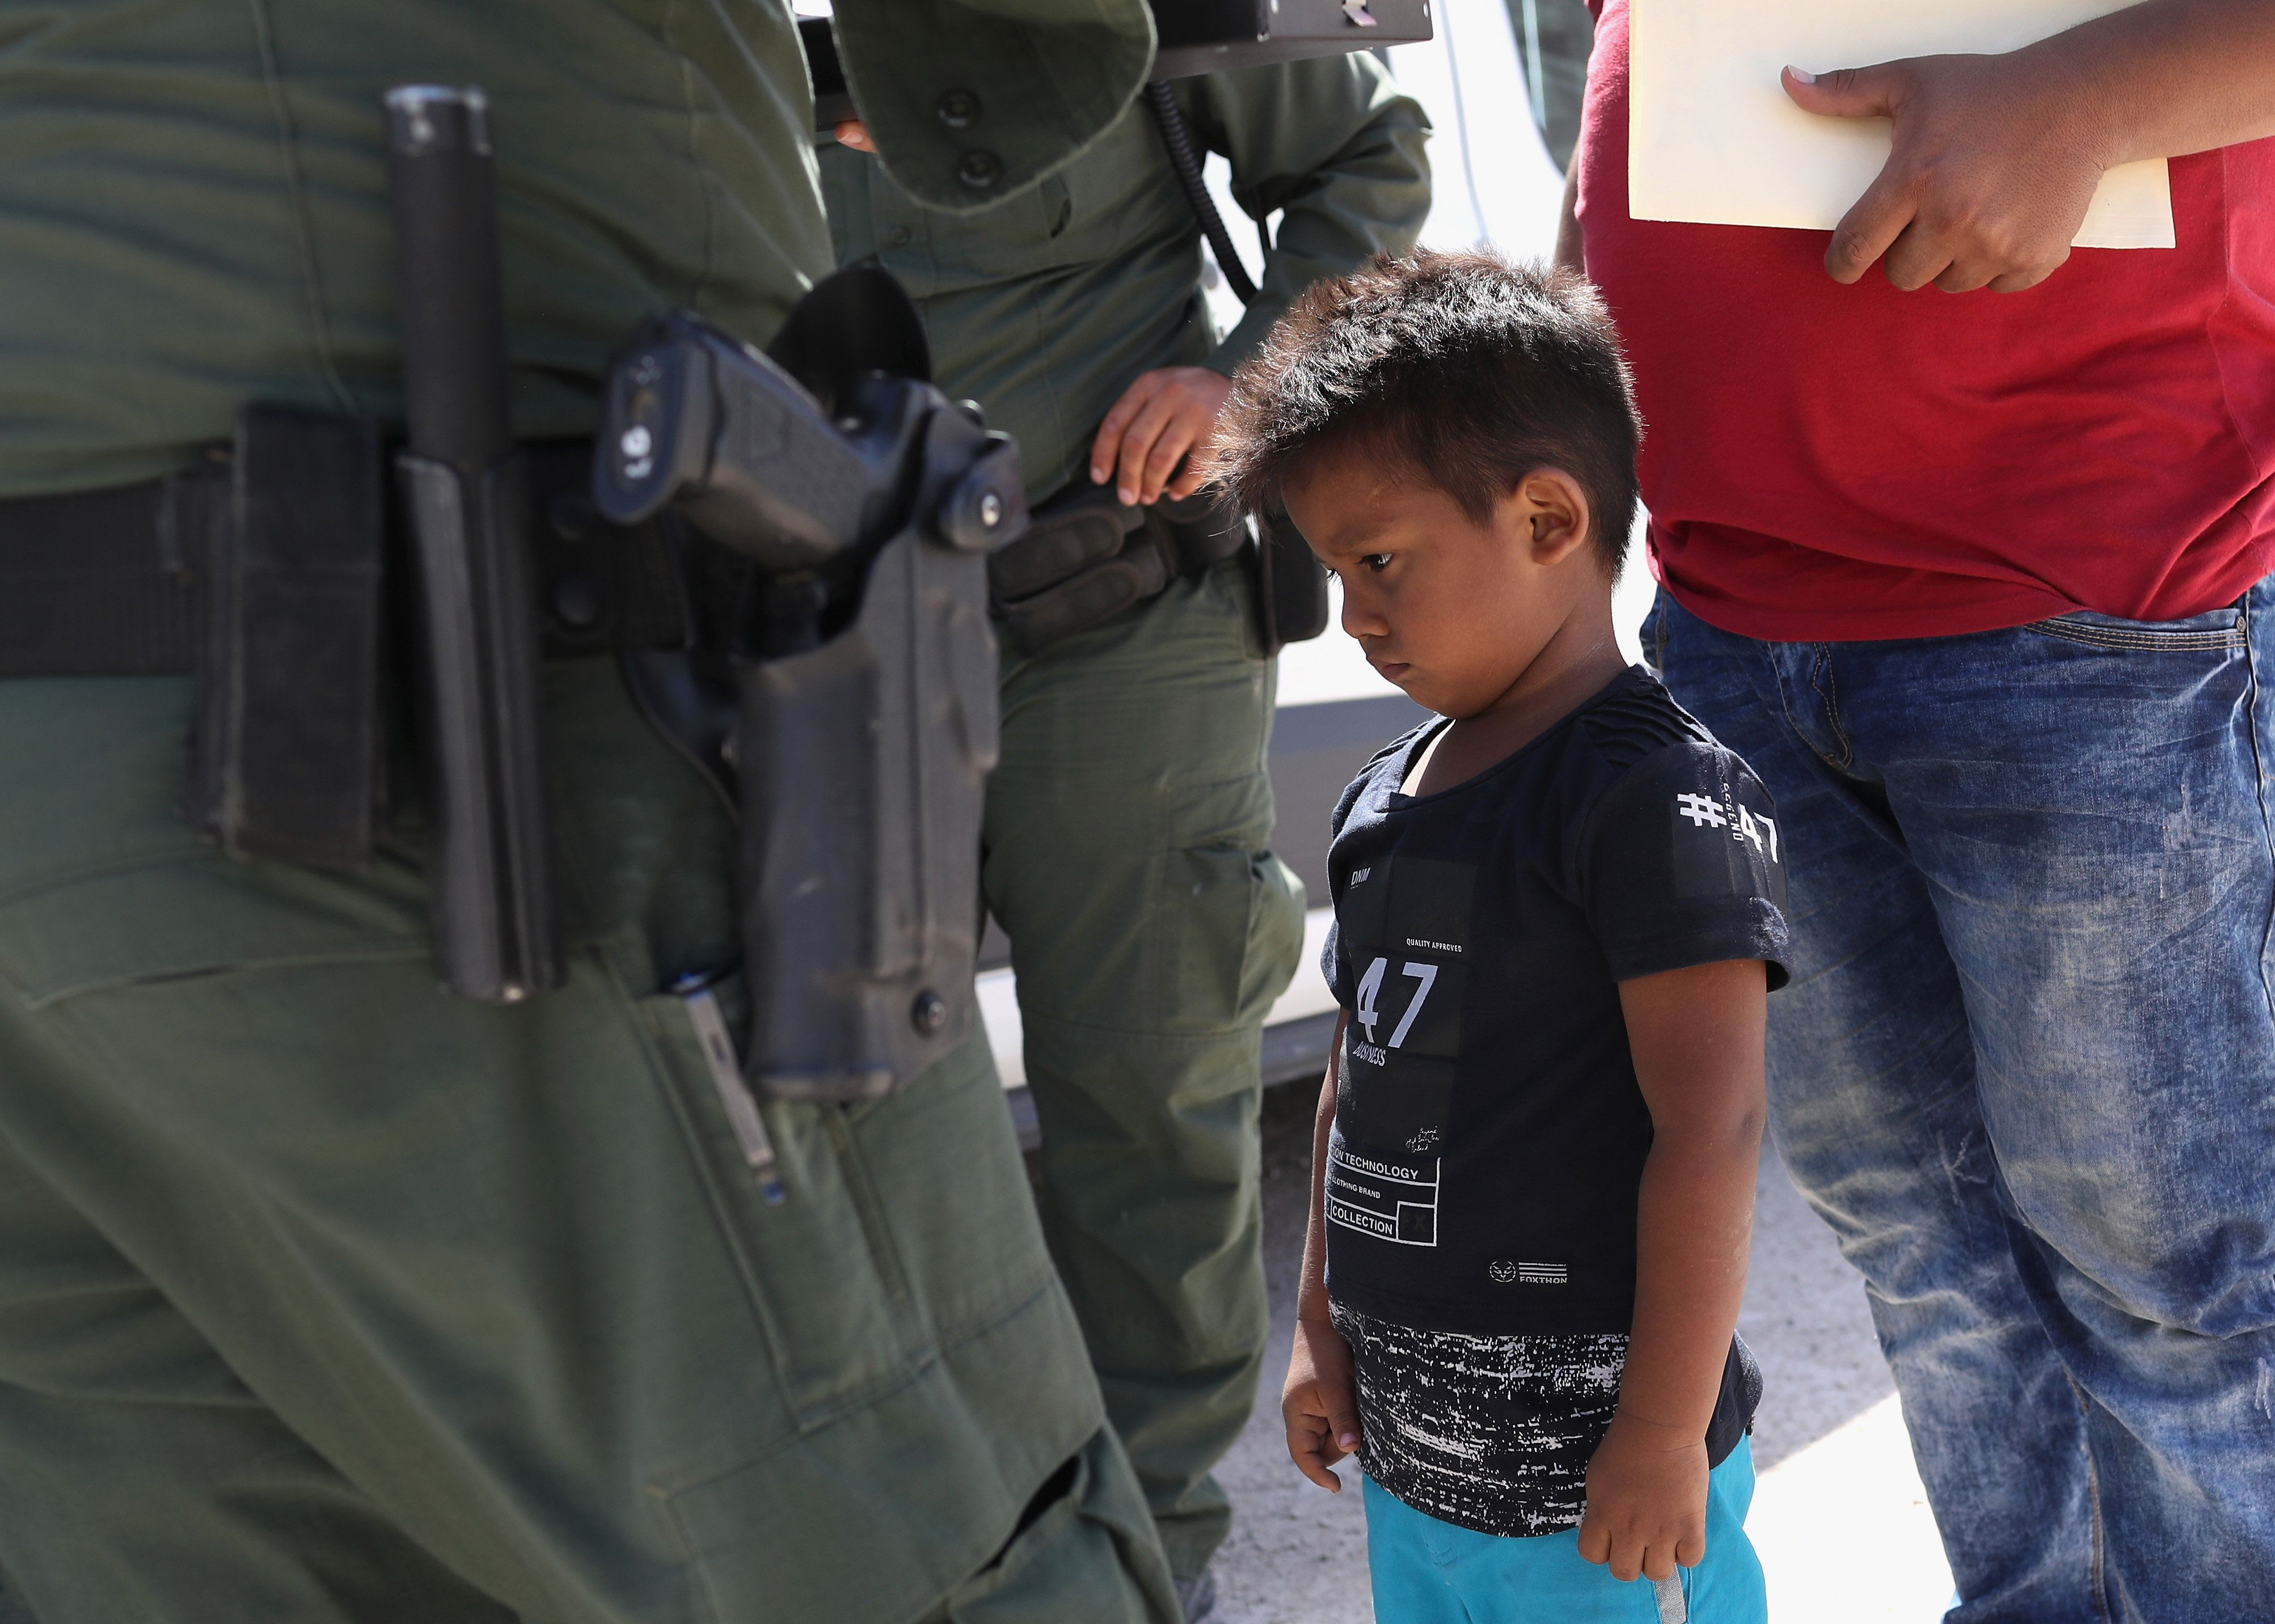 MISSION, TX - JUNE 12:  A boy and father from Honduras are taken into custody by U.S. Border Patrol agents near the U.S.-Mexico Border on June 12, 2018 near Mission, Texas. The asylum seekers were then sent to a U.S. Customs and Border Protection (CBP) processing center for possible separation. U.S. border authorities are executing the Trump administration's 'zero tolerance' policy towards undocumented immigrants. U.S. Attorney General Jeff Sessions also said that domestic and gang violence in immigrants' country of origin would no longer qualify them for political asylum status.  (Photo by John Moore/Getty Images)